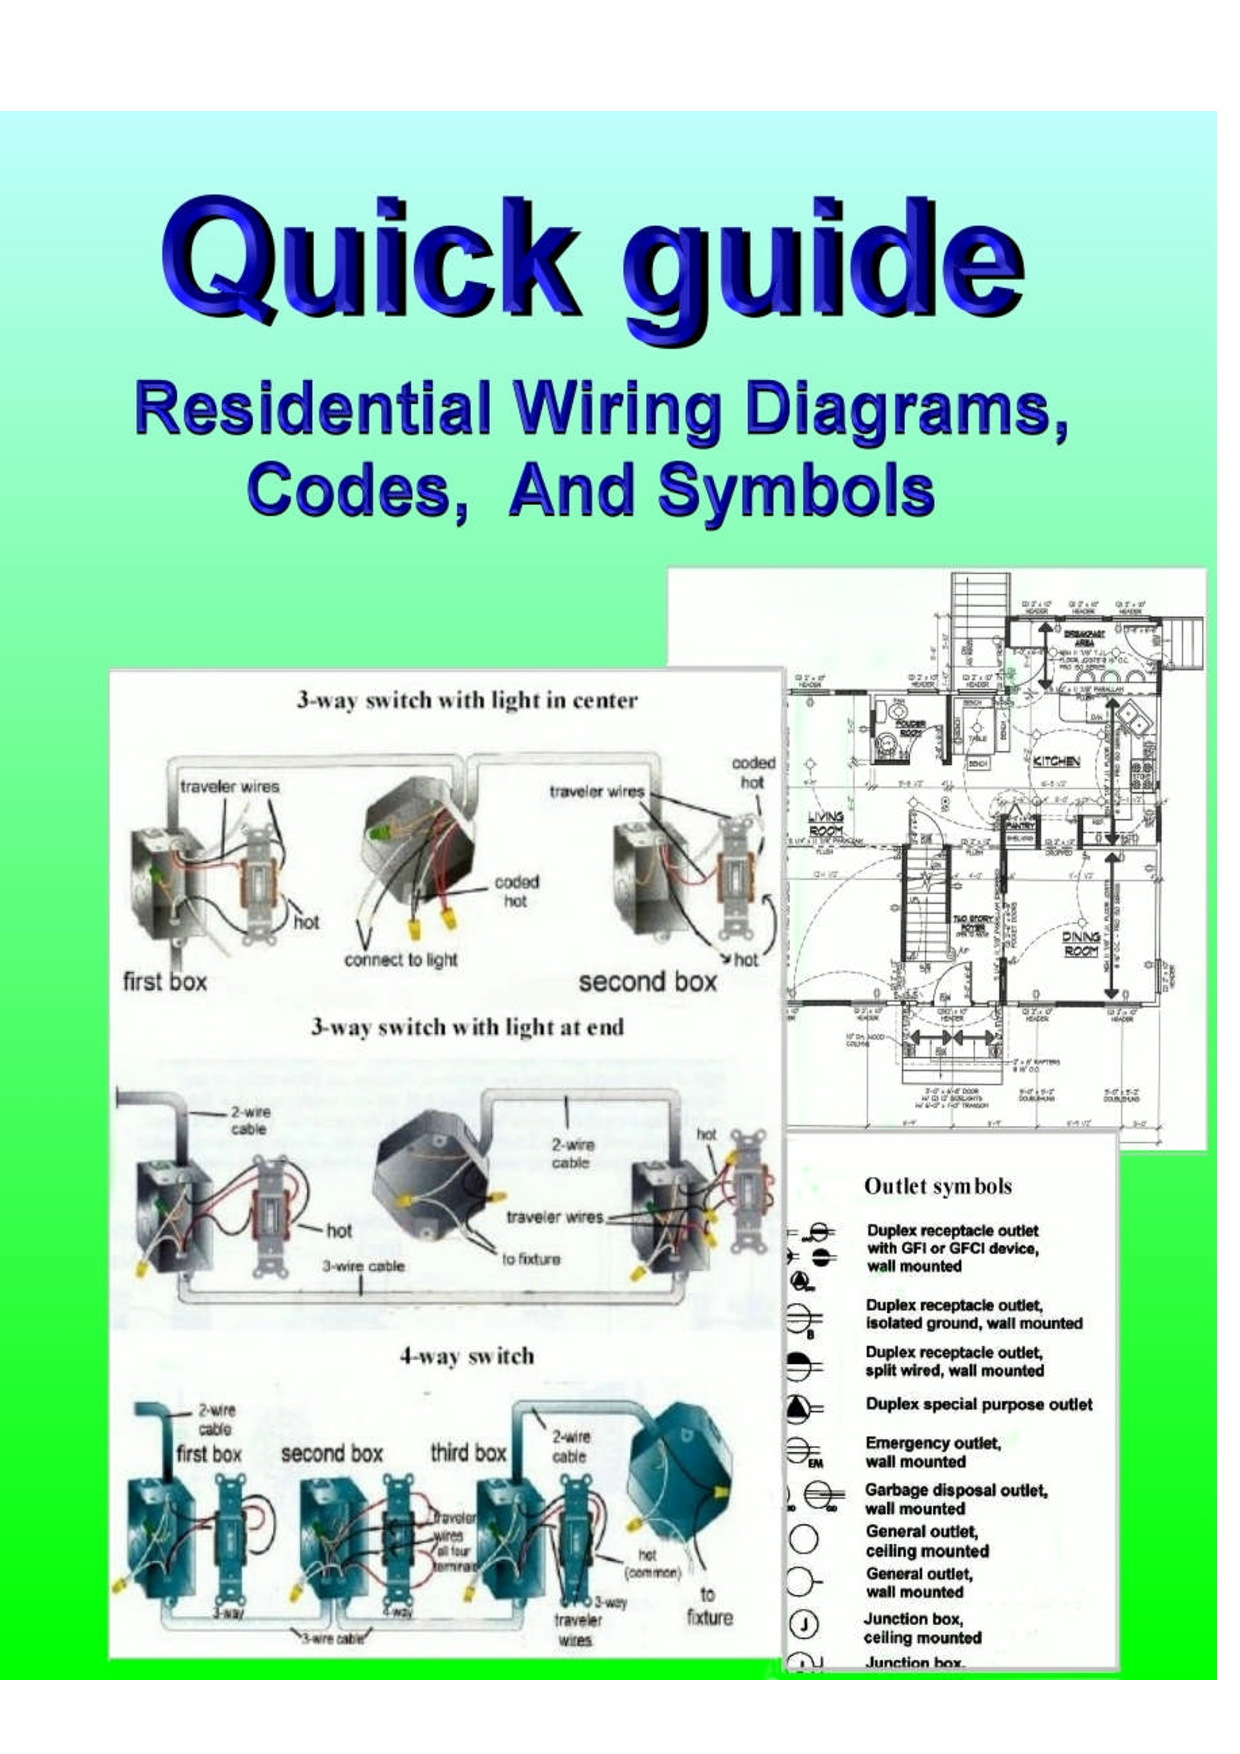 home electrical wiring diagrams pdf download legal documents 39 complete home wiring guide home electrical wiring [ 1240 x 1754 Pixel ]